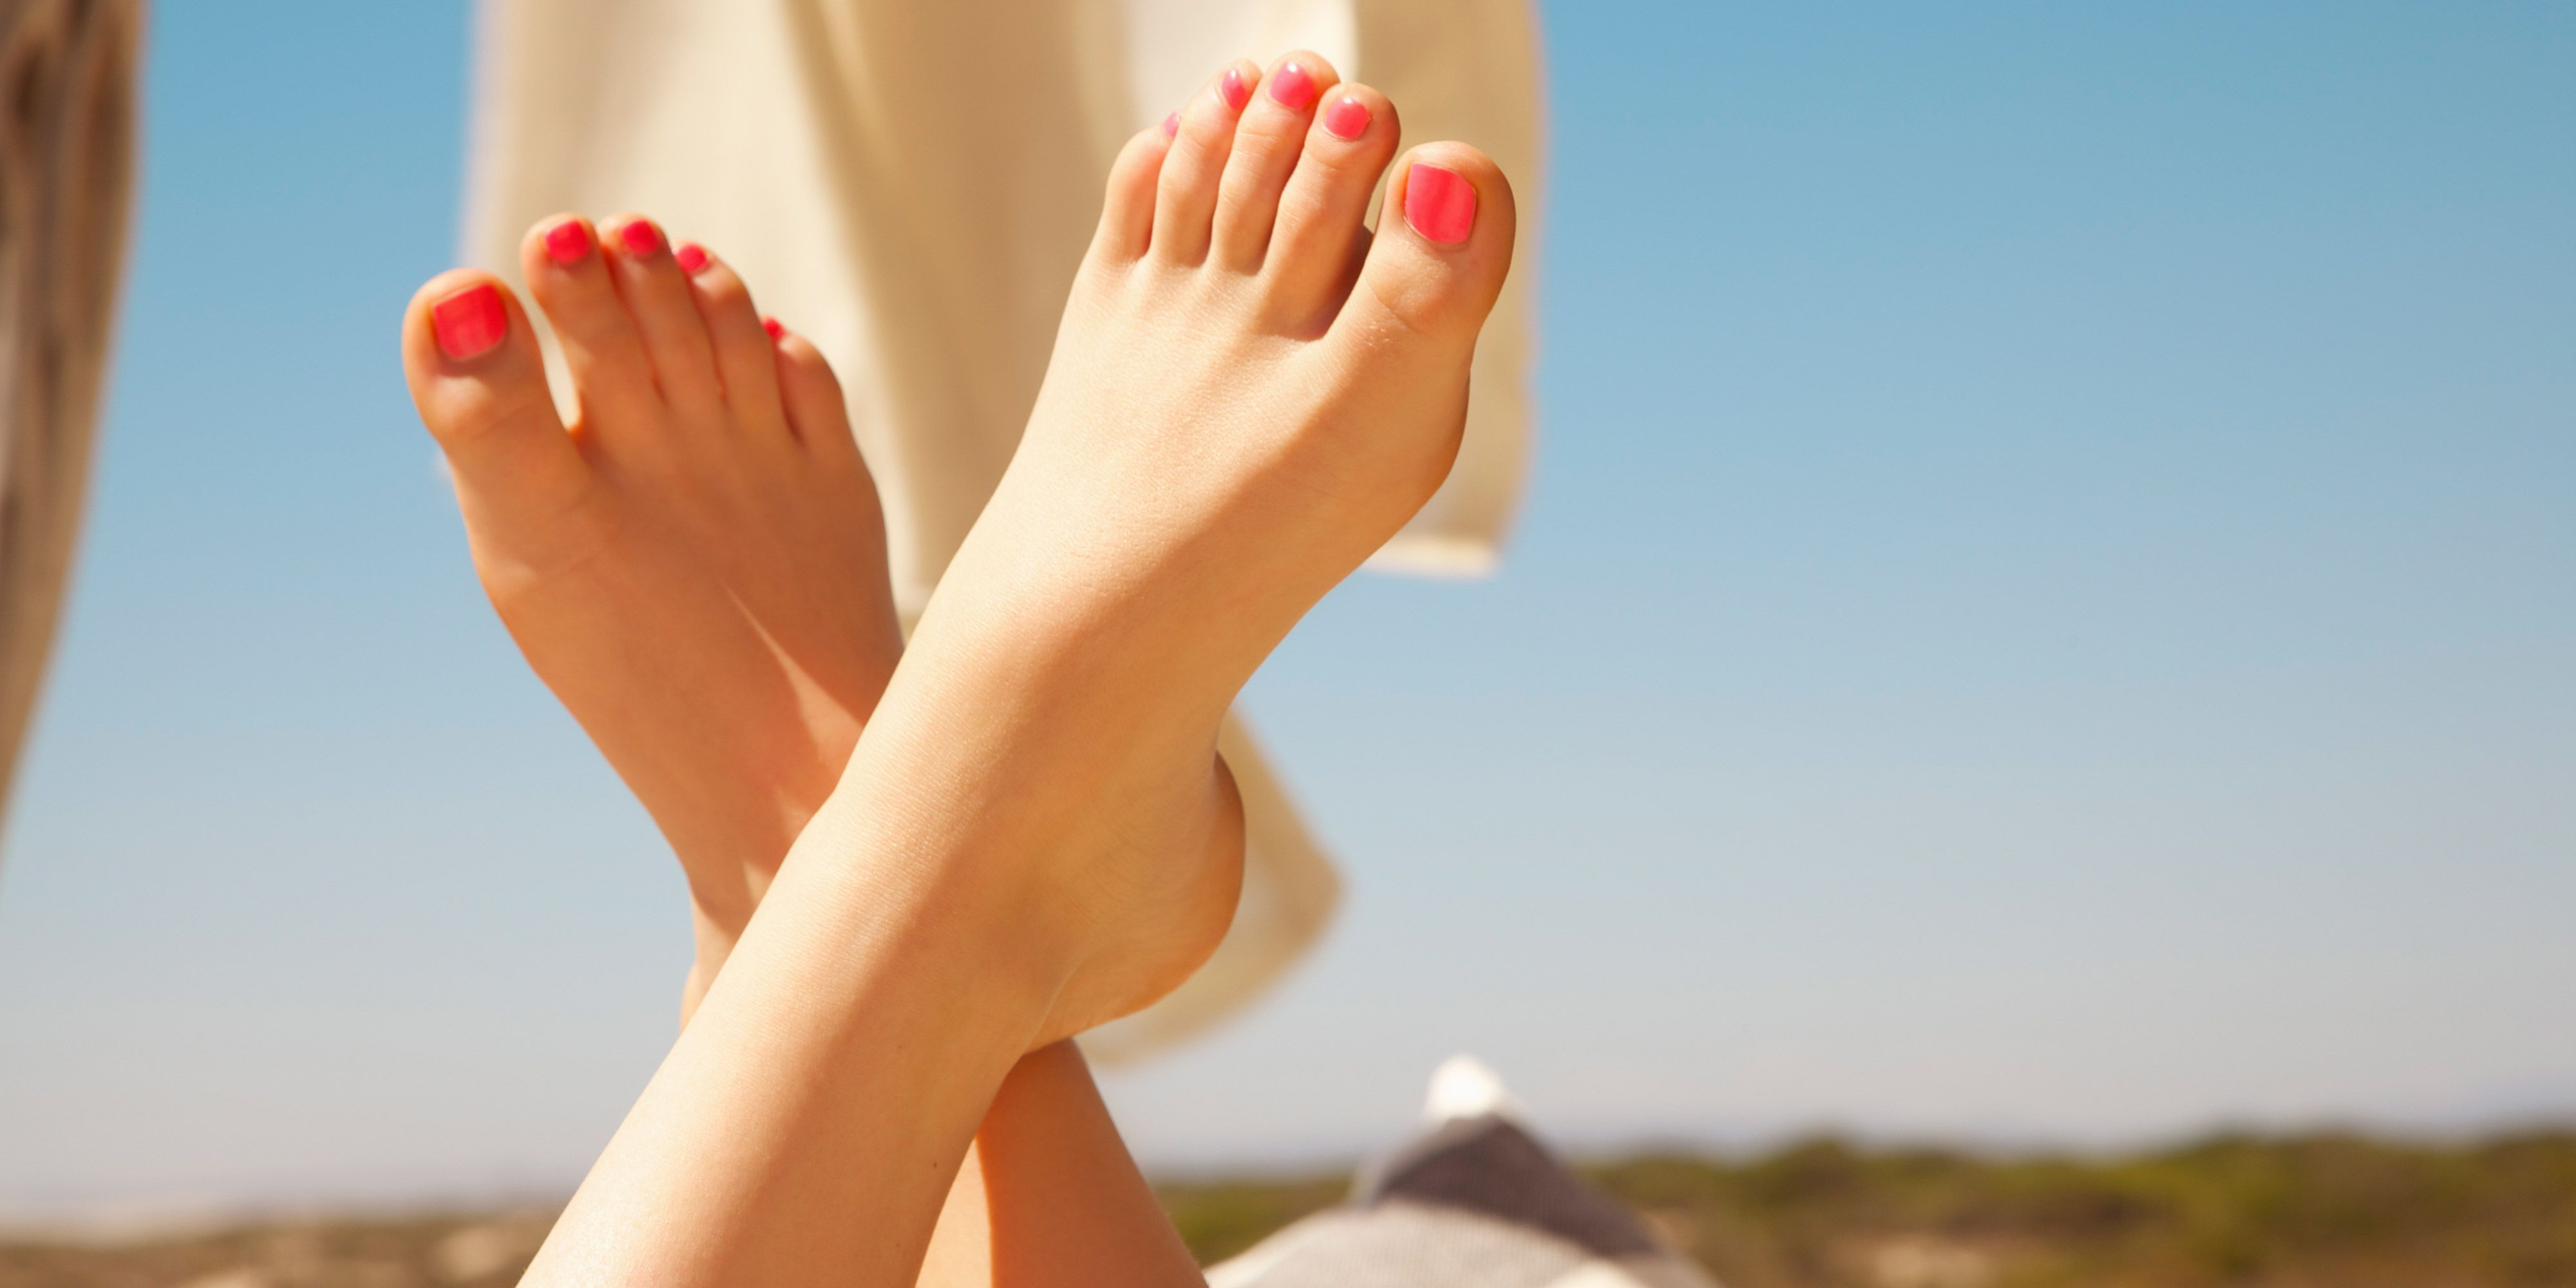 The Good Foot Guide: everything you need for beautiful feet and nails